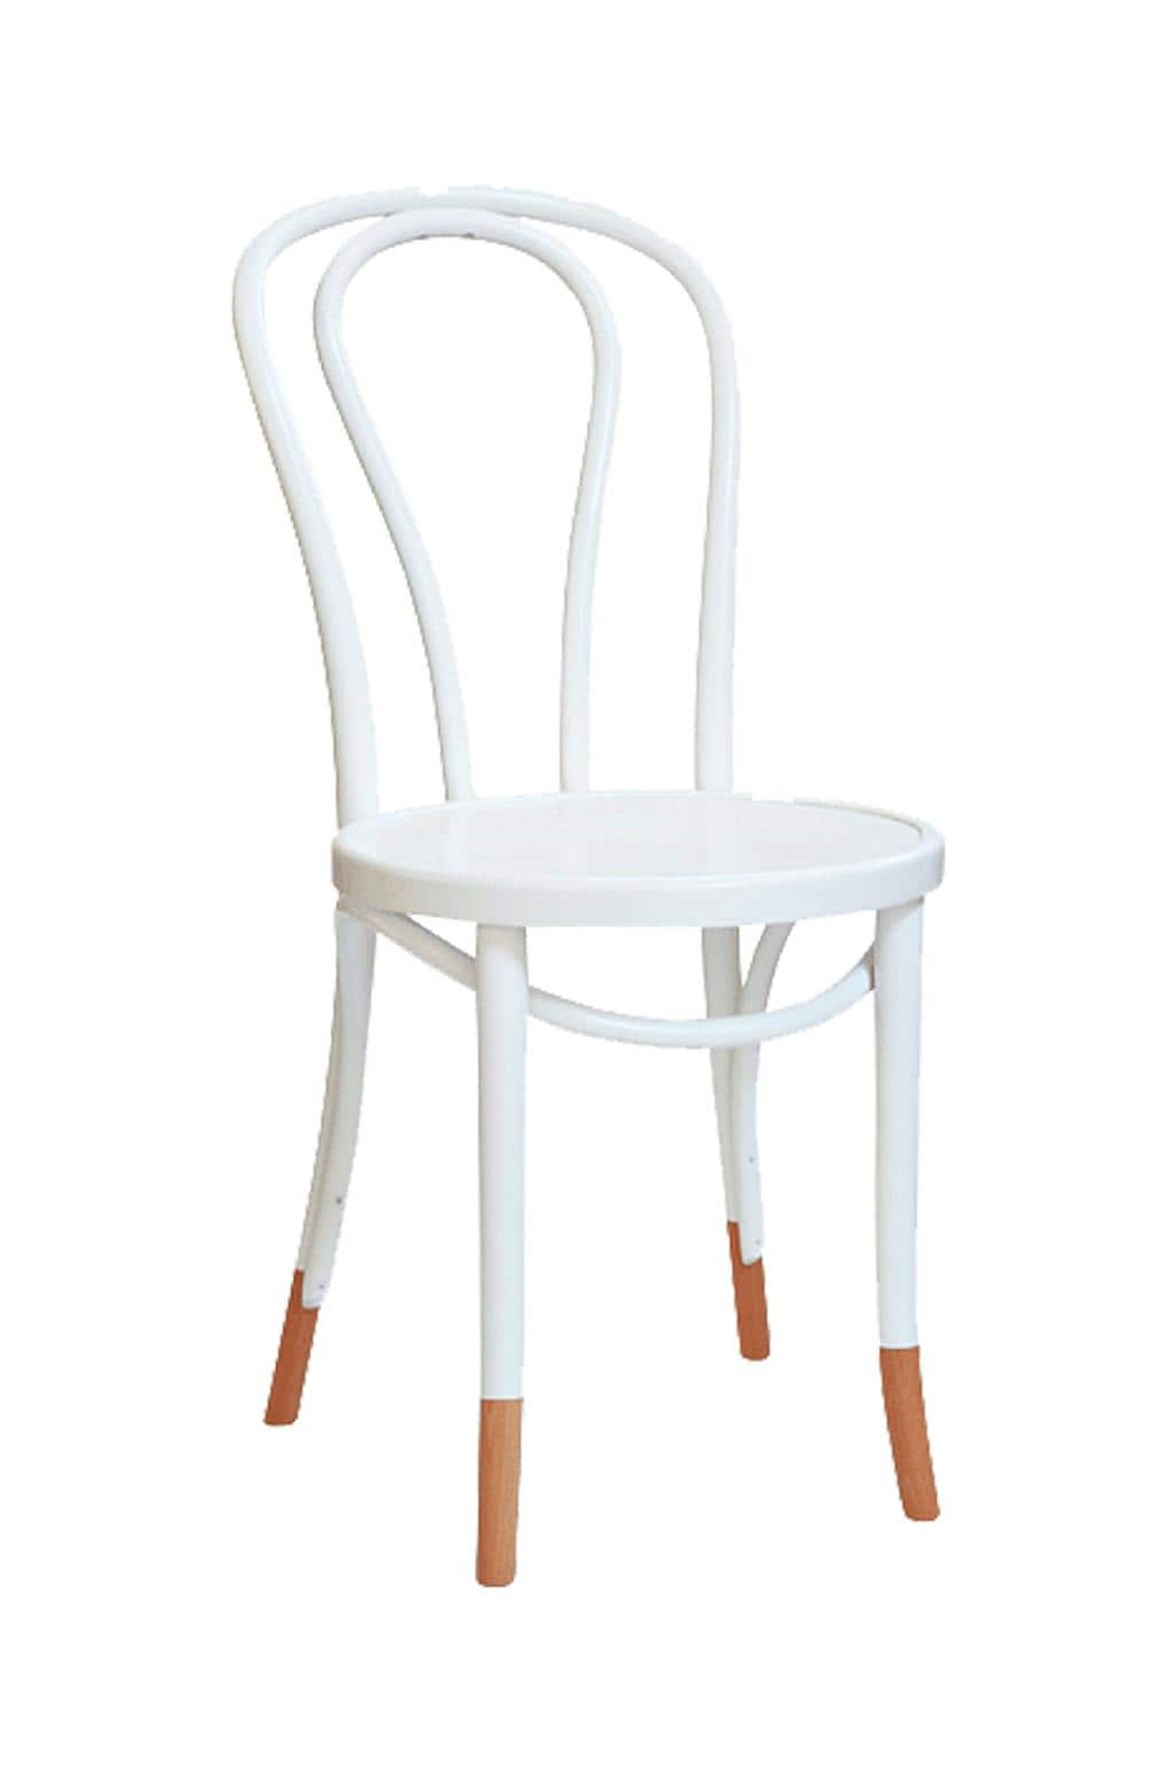 "'No. 18' chair in White with Natural Sock, from $368, [Thonet](http://thonet.com.au/products/no-18-thonet/|target=""_blank""